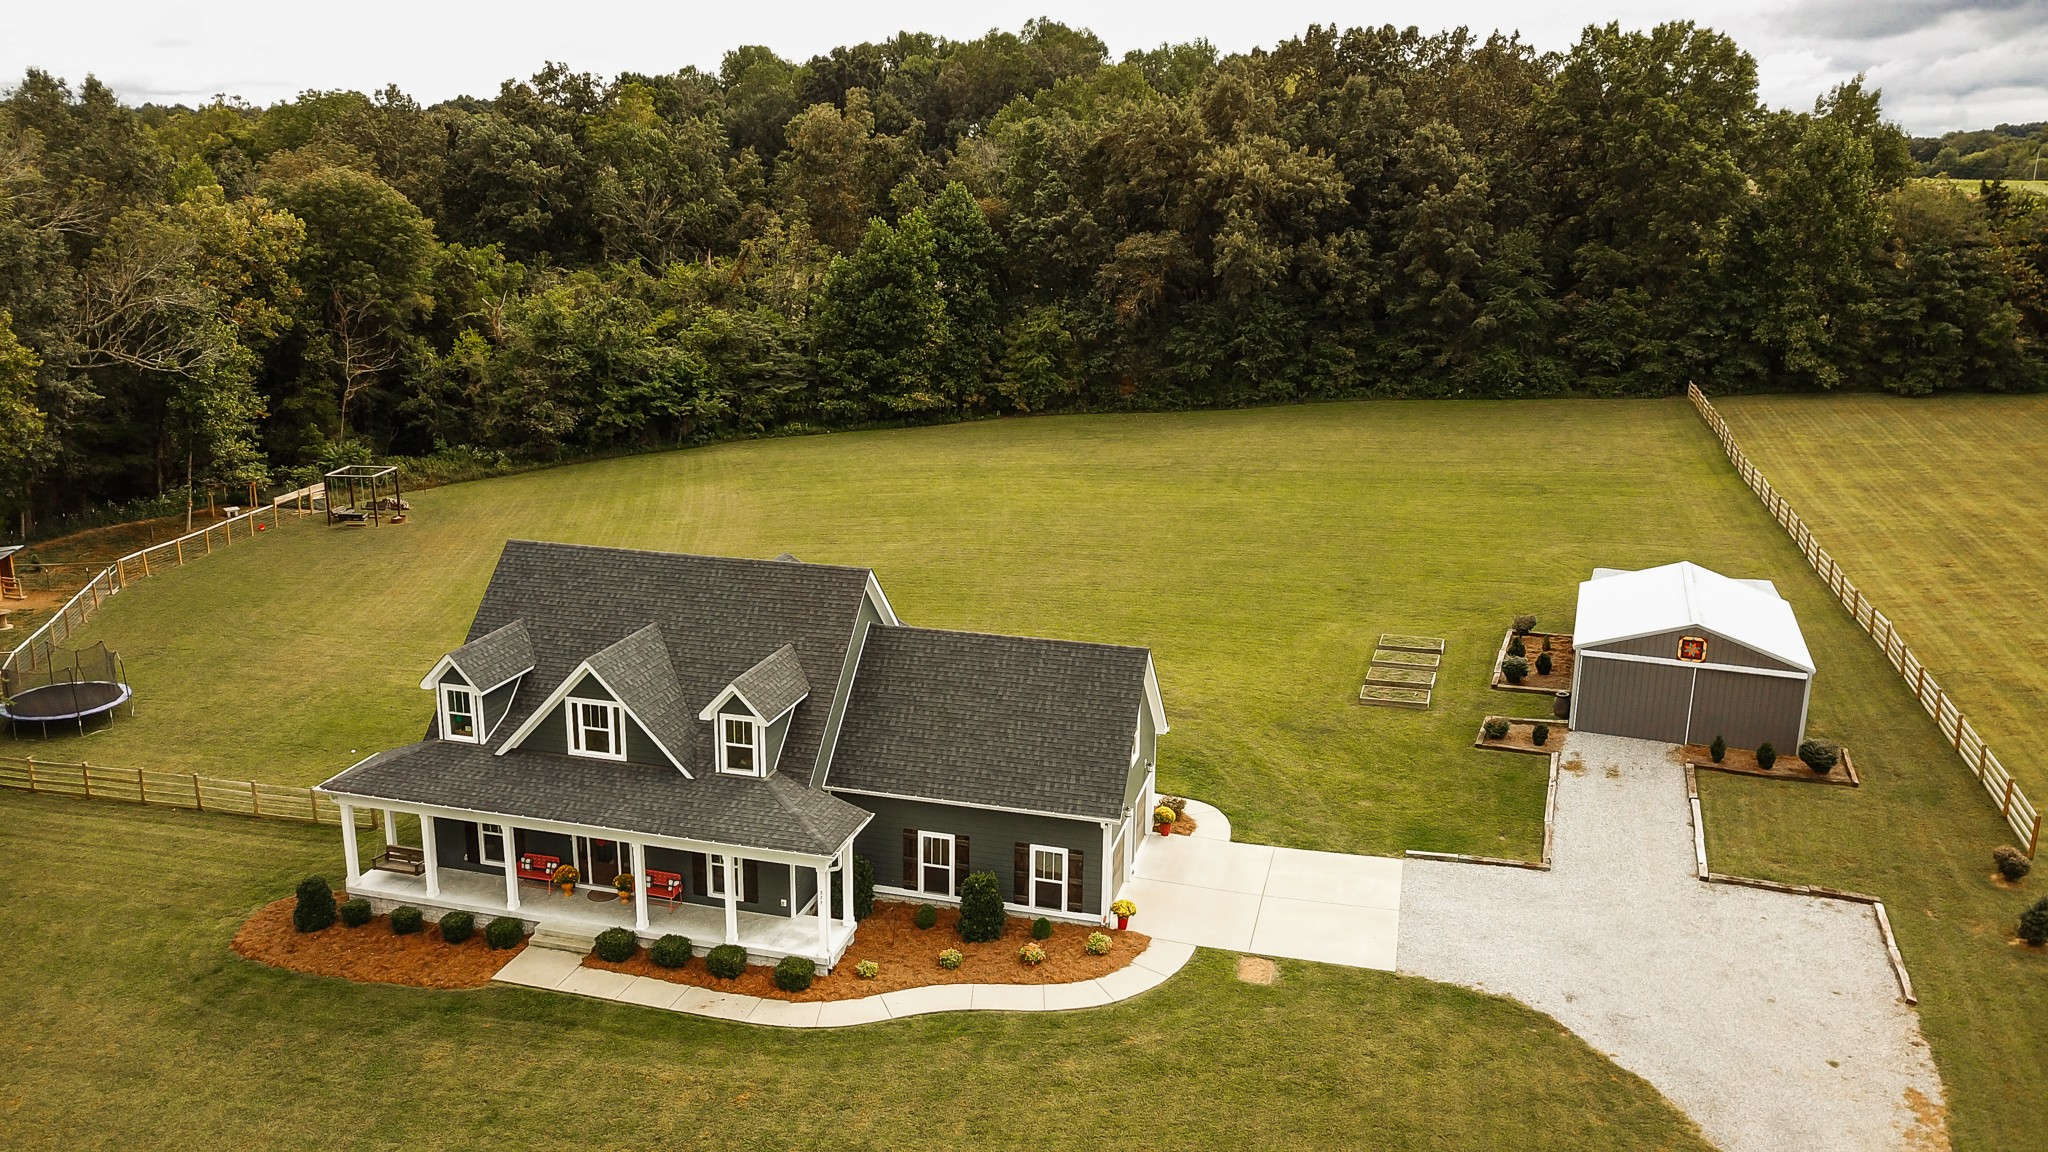 377 Tom Link Rd Property Photo - Cottontown, TN real estate listing